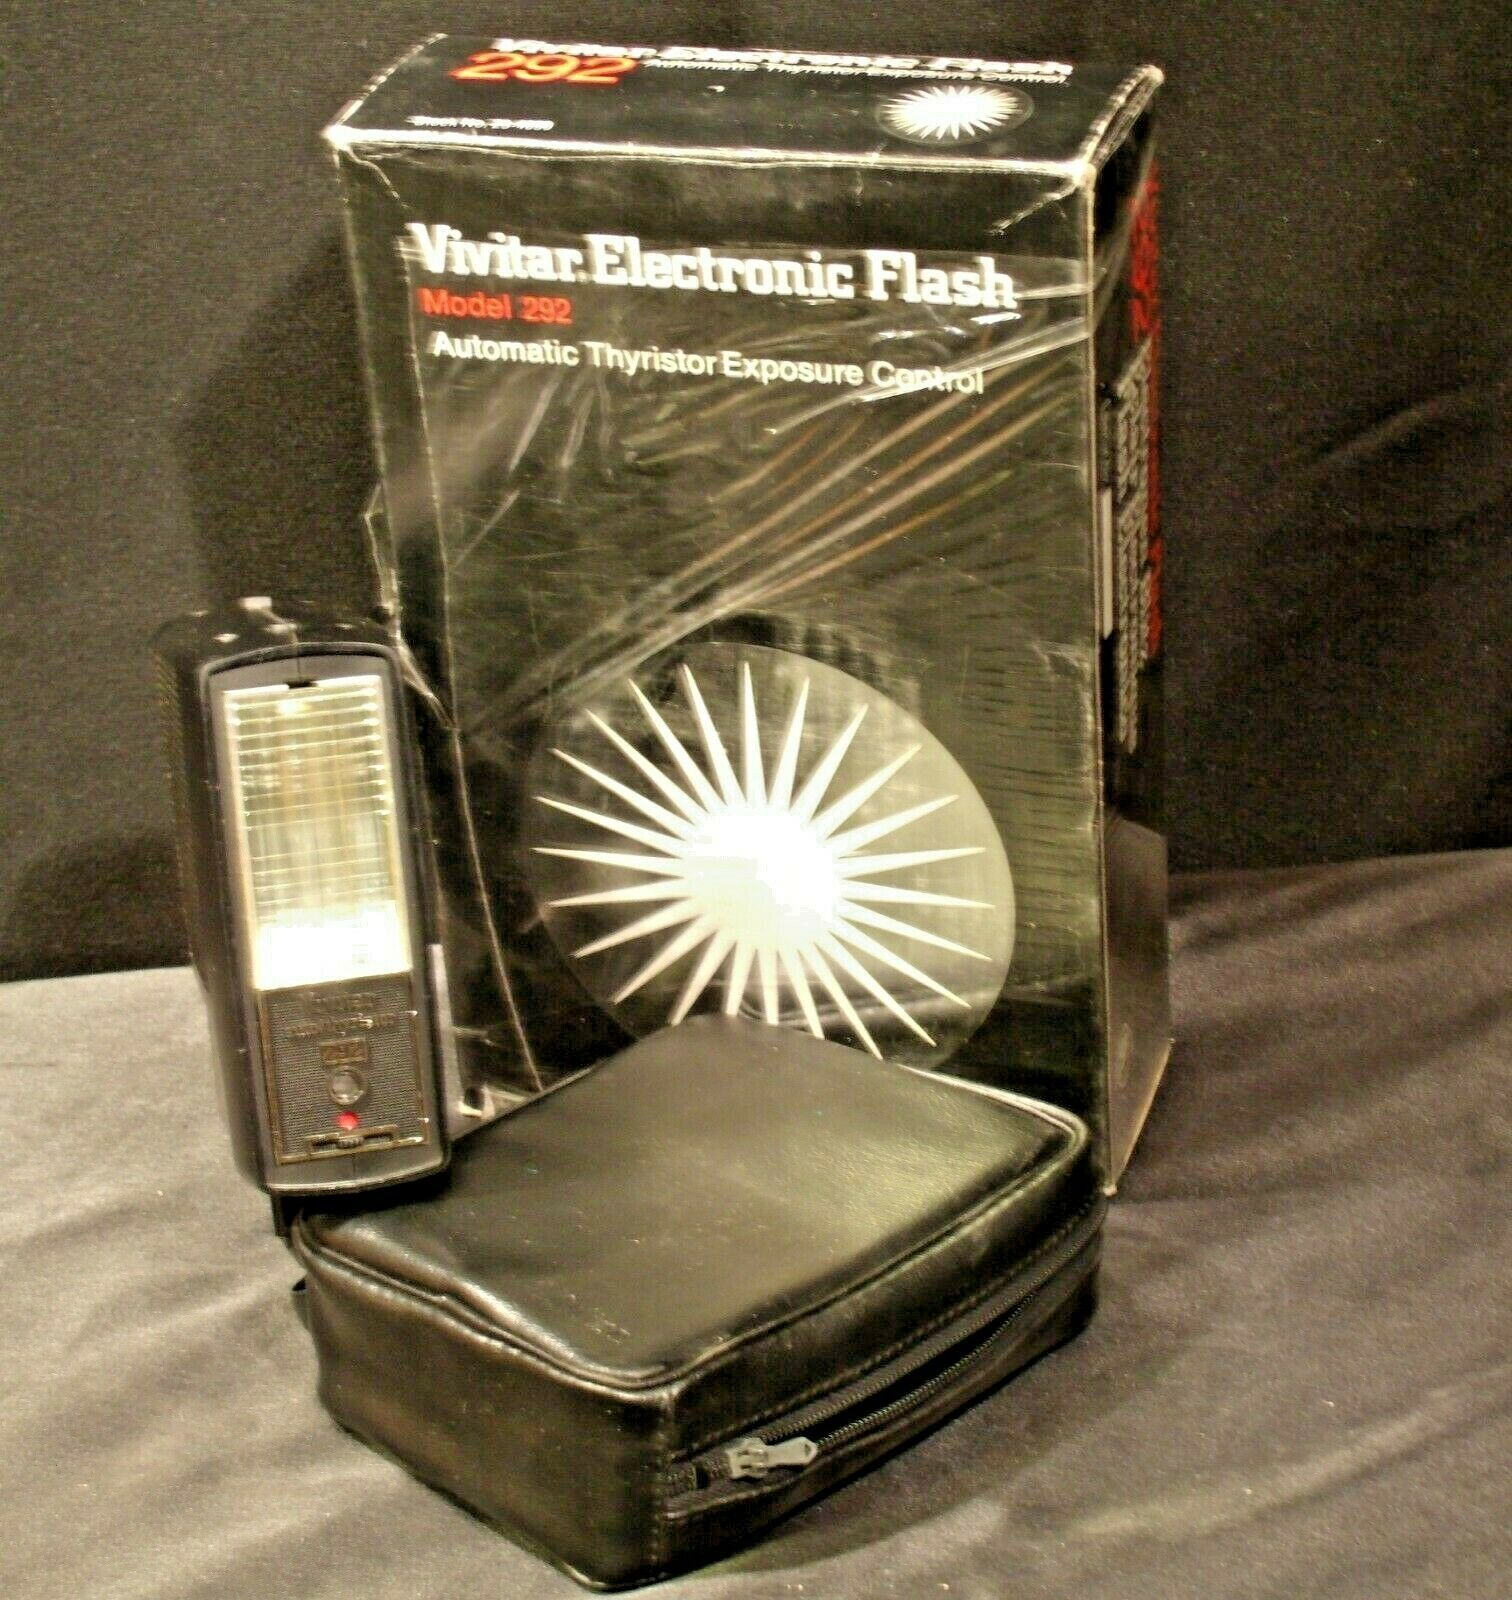 Vivitar Electronic Flash 292 with carrying case AA-192040 Vintage